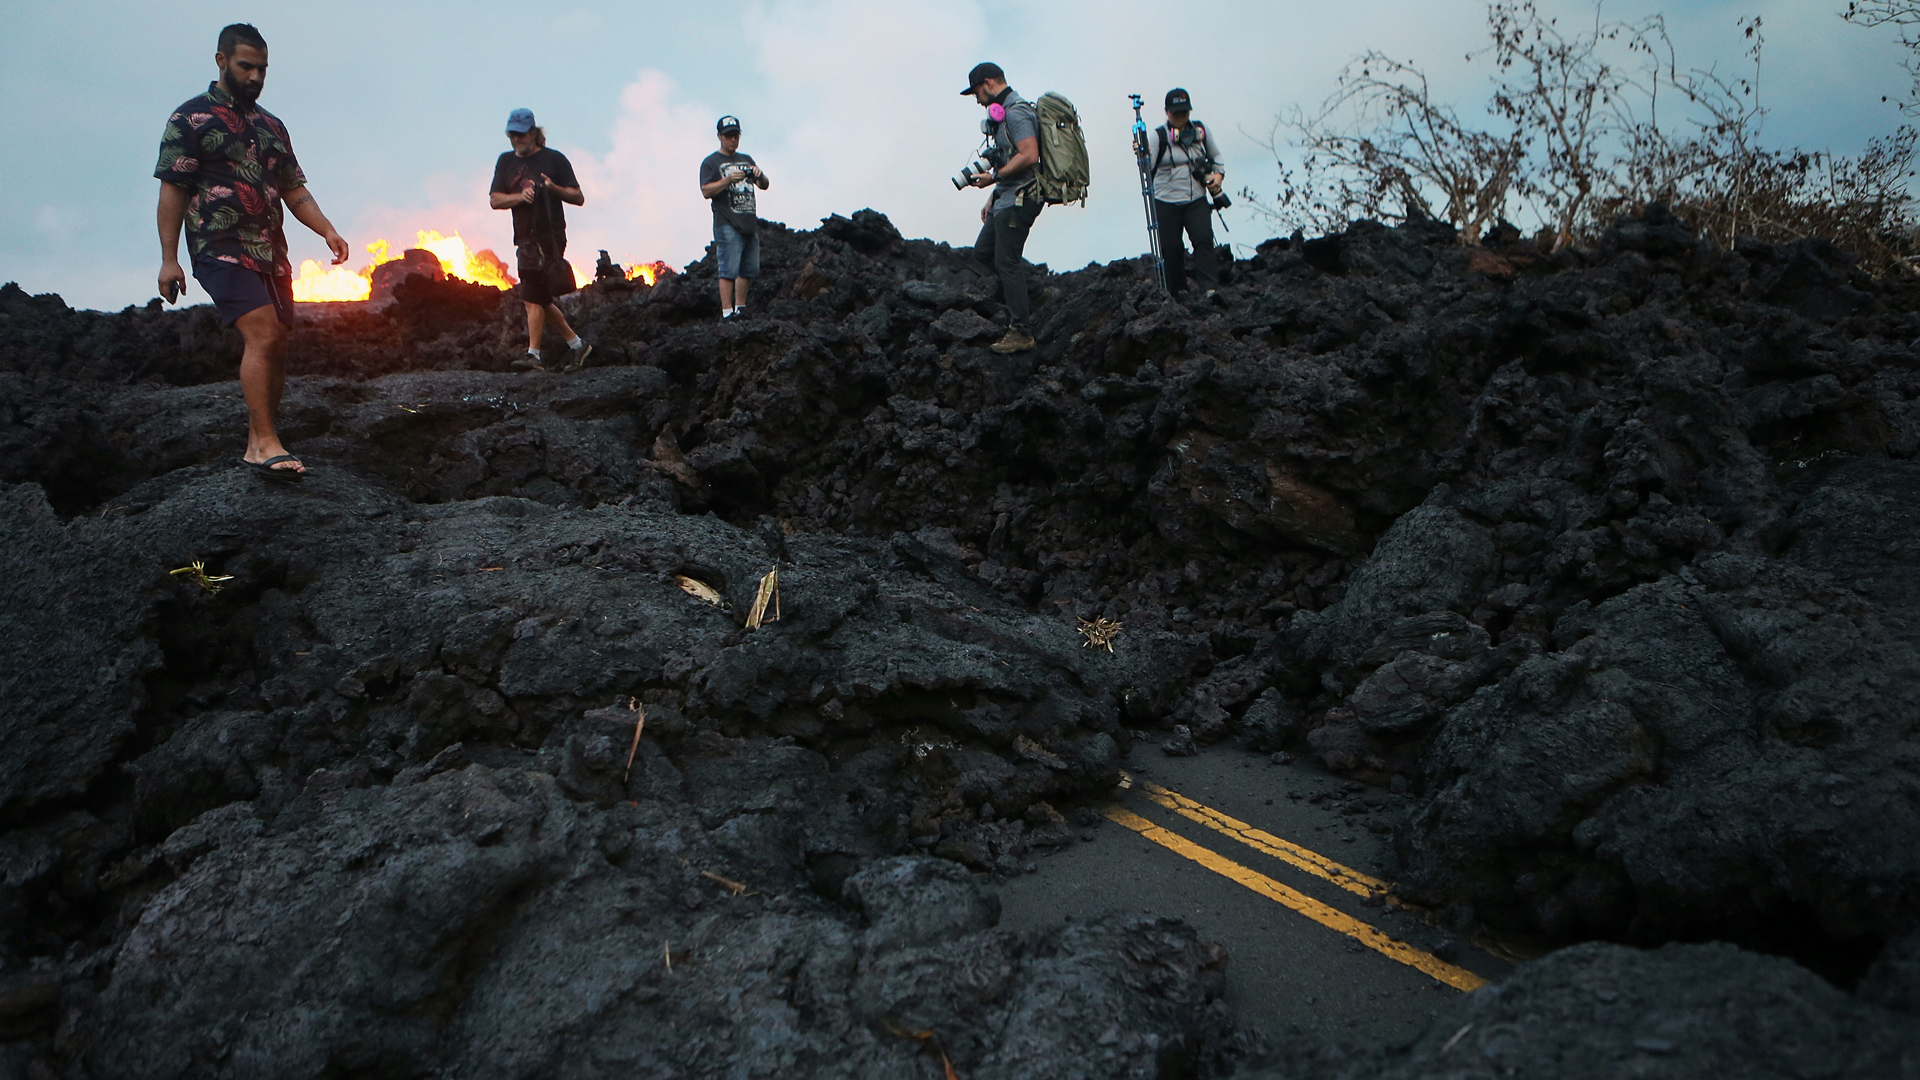 Onlookers and photographers walk on hardened lava from a Kilauea volcano fissure as lava erupts in Leilani Estates, on Hawaii's Big Island, on May 26, 2018. (Credit: Mario Tama/Getty Images)